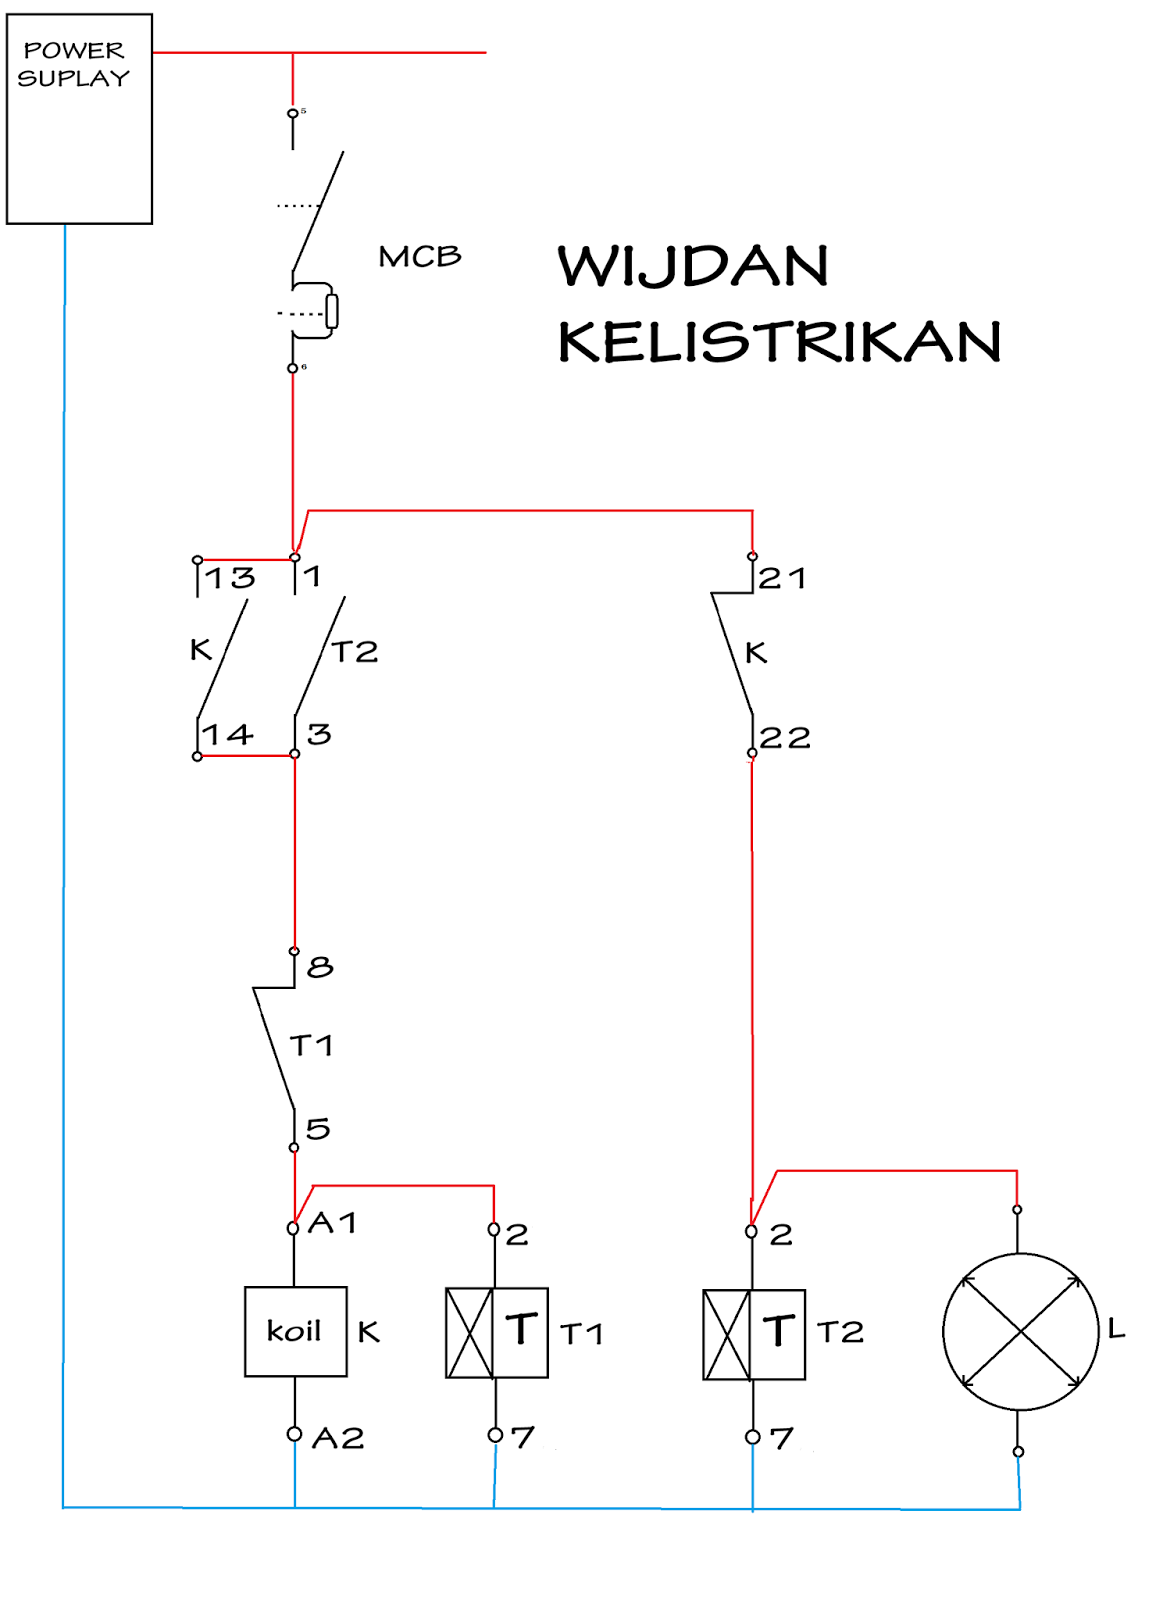 Wiring Diagram Lampu Jalan Top Leader Site Depan Good Place To Get U2022 Rh Kentrade De Led